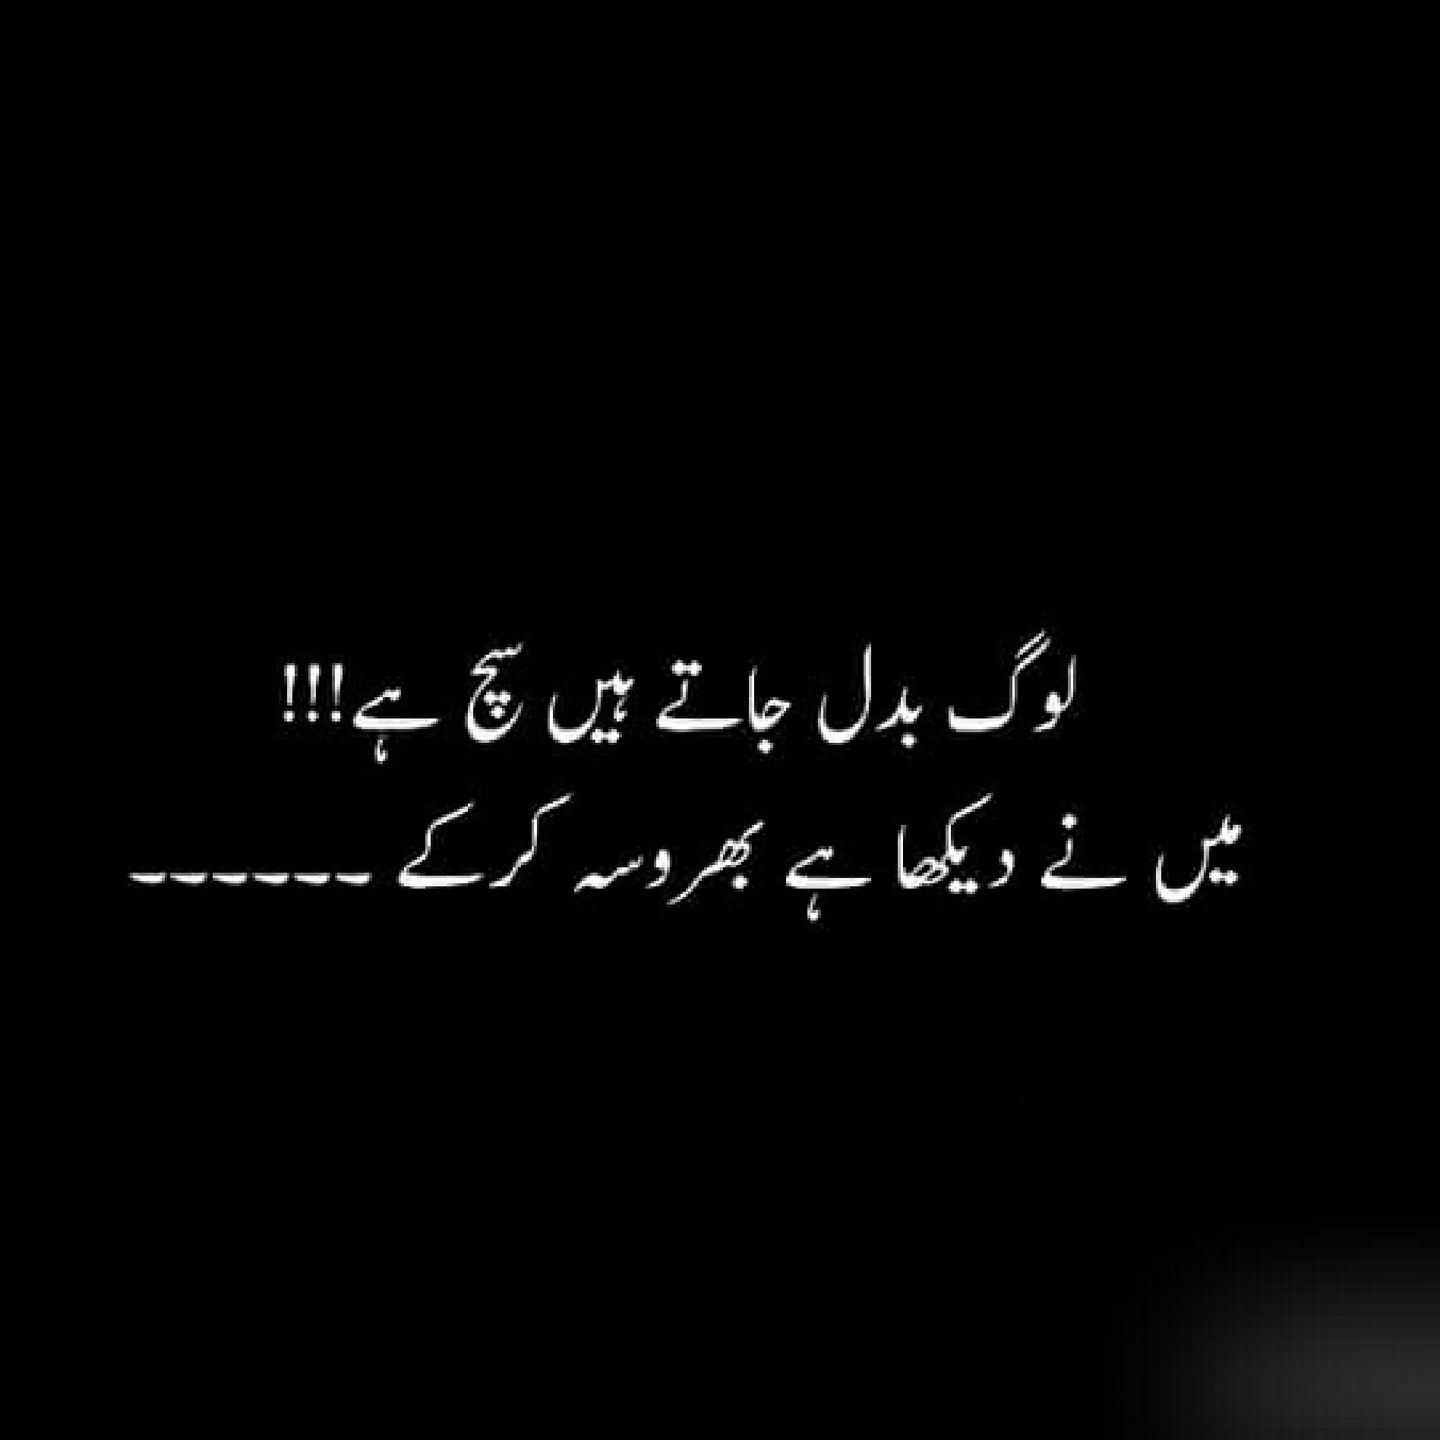 Urdu Poetry, Urdu Quotes